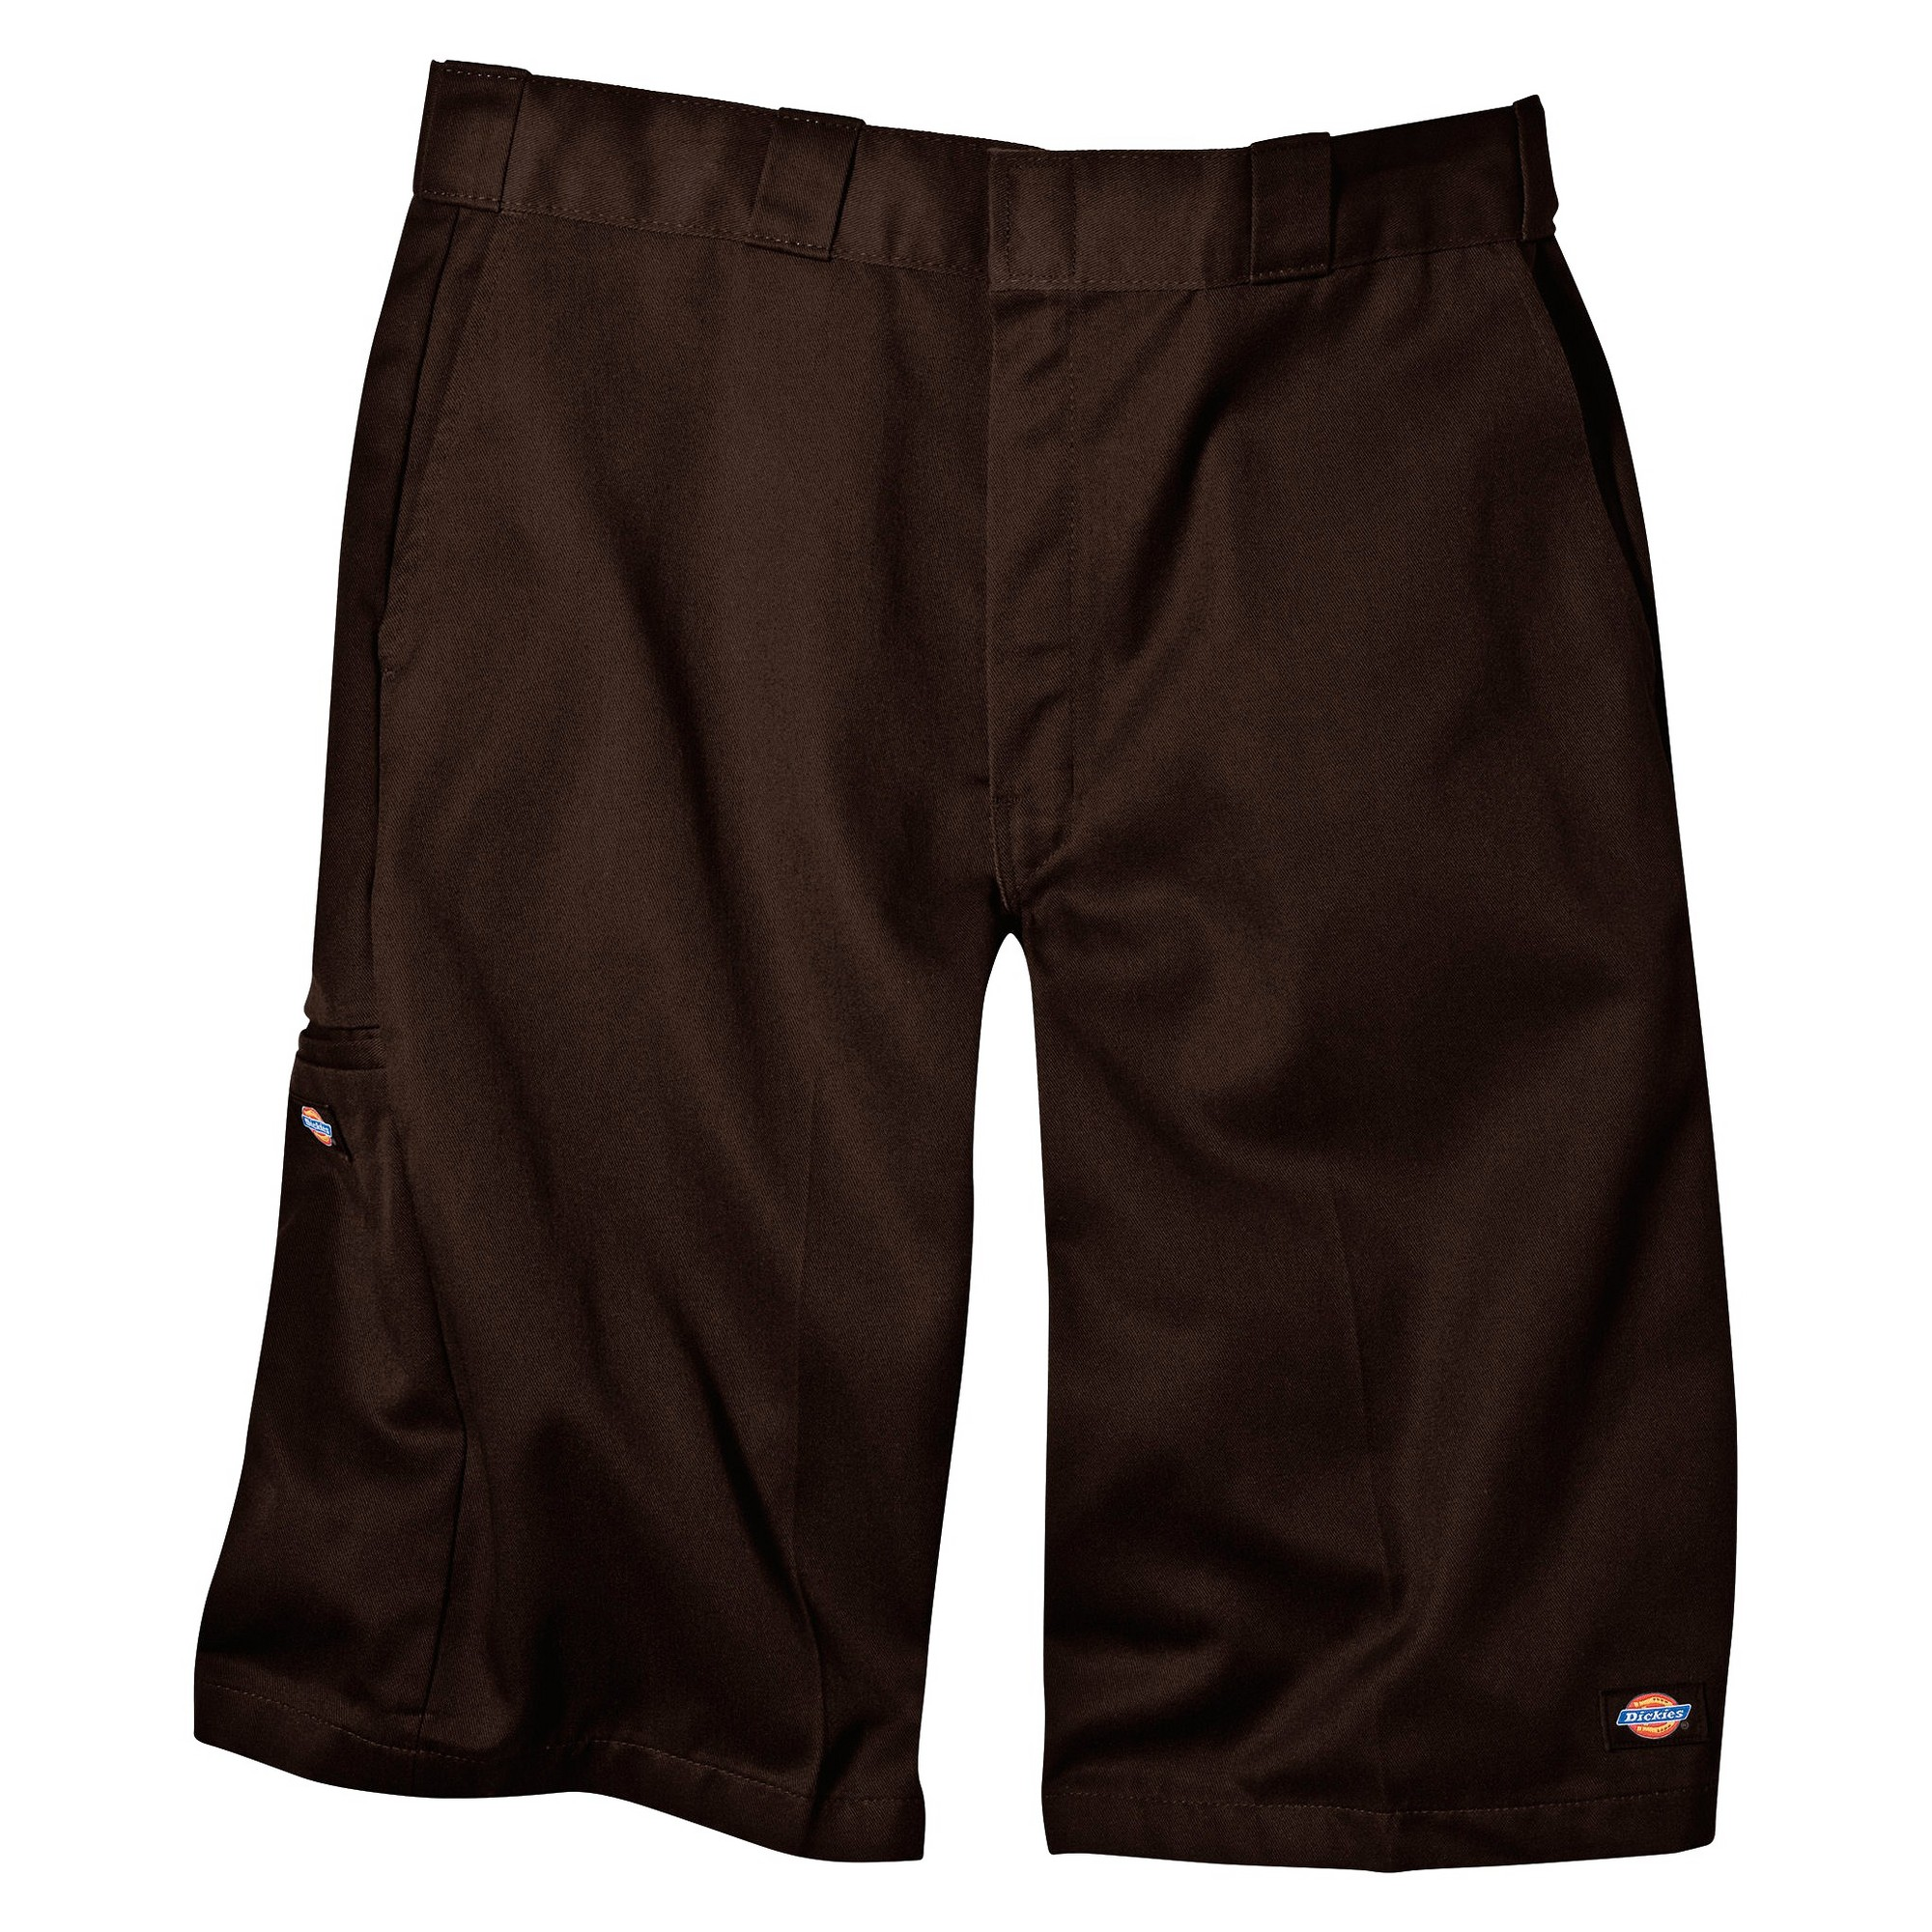 'Dickies Men's Loose Fit Twill 13'' Multi-Pocket Work Shorts- Dark Brown 38'